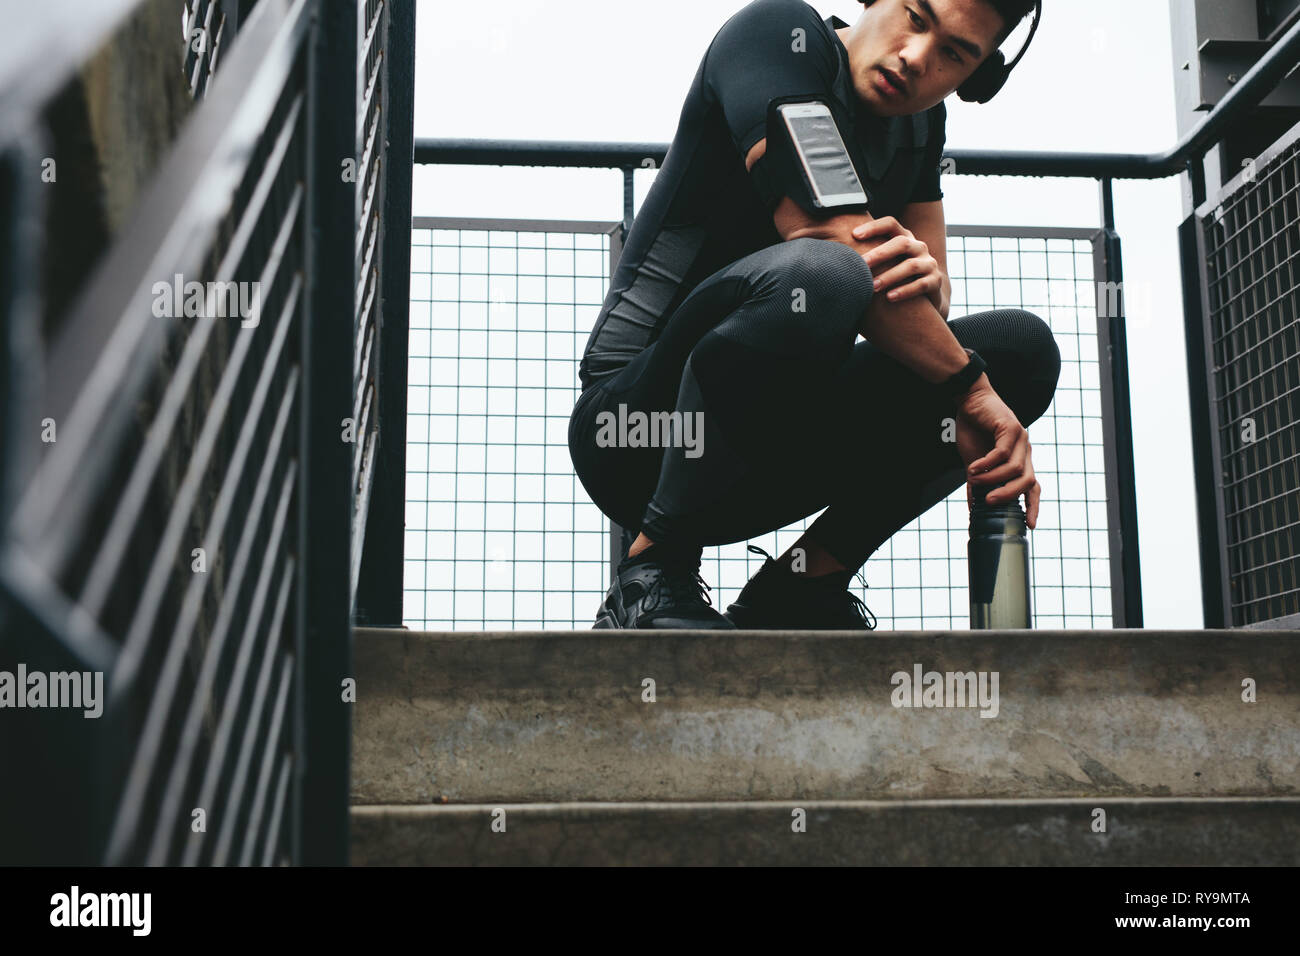 Young asian male listening to music on mobile phone. Fitness male with mobile phone armband crouching outdoors after exercising session. - Stock Image